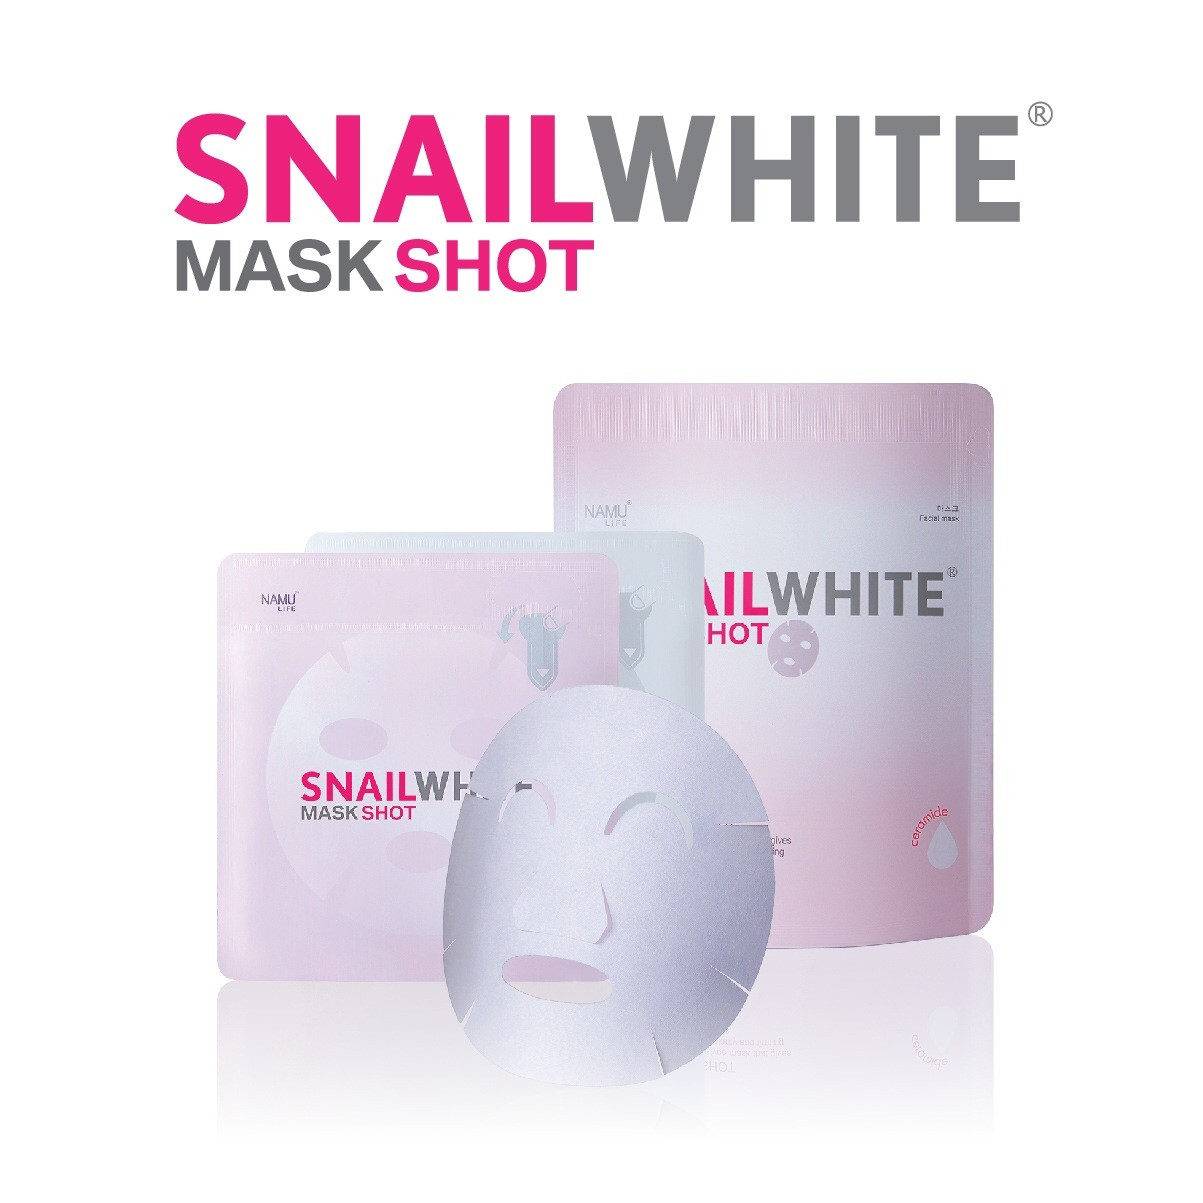 Snail White Mask Shot (5 pieces per pack)